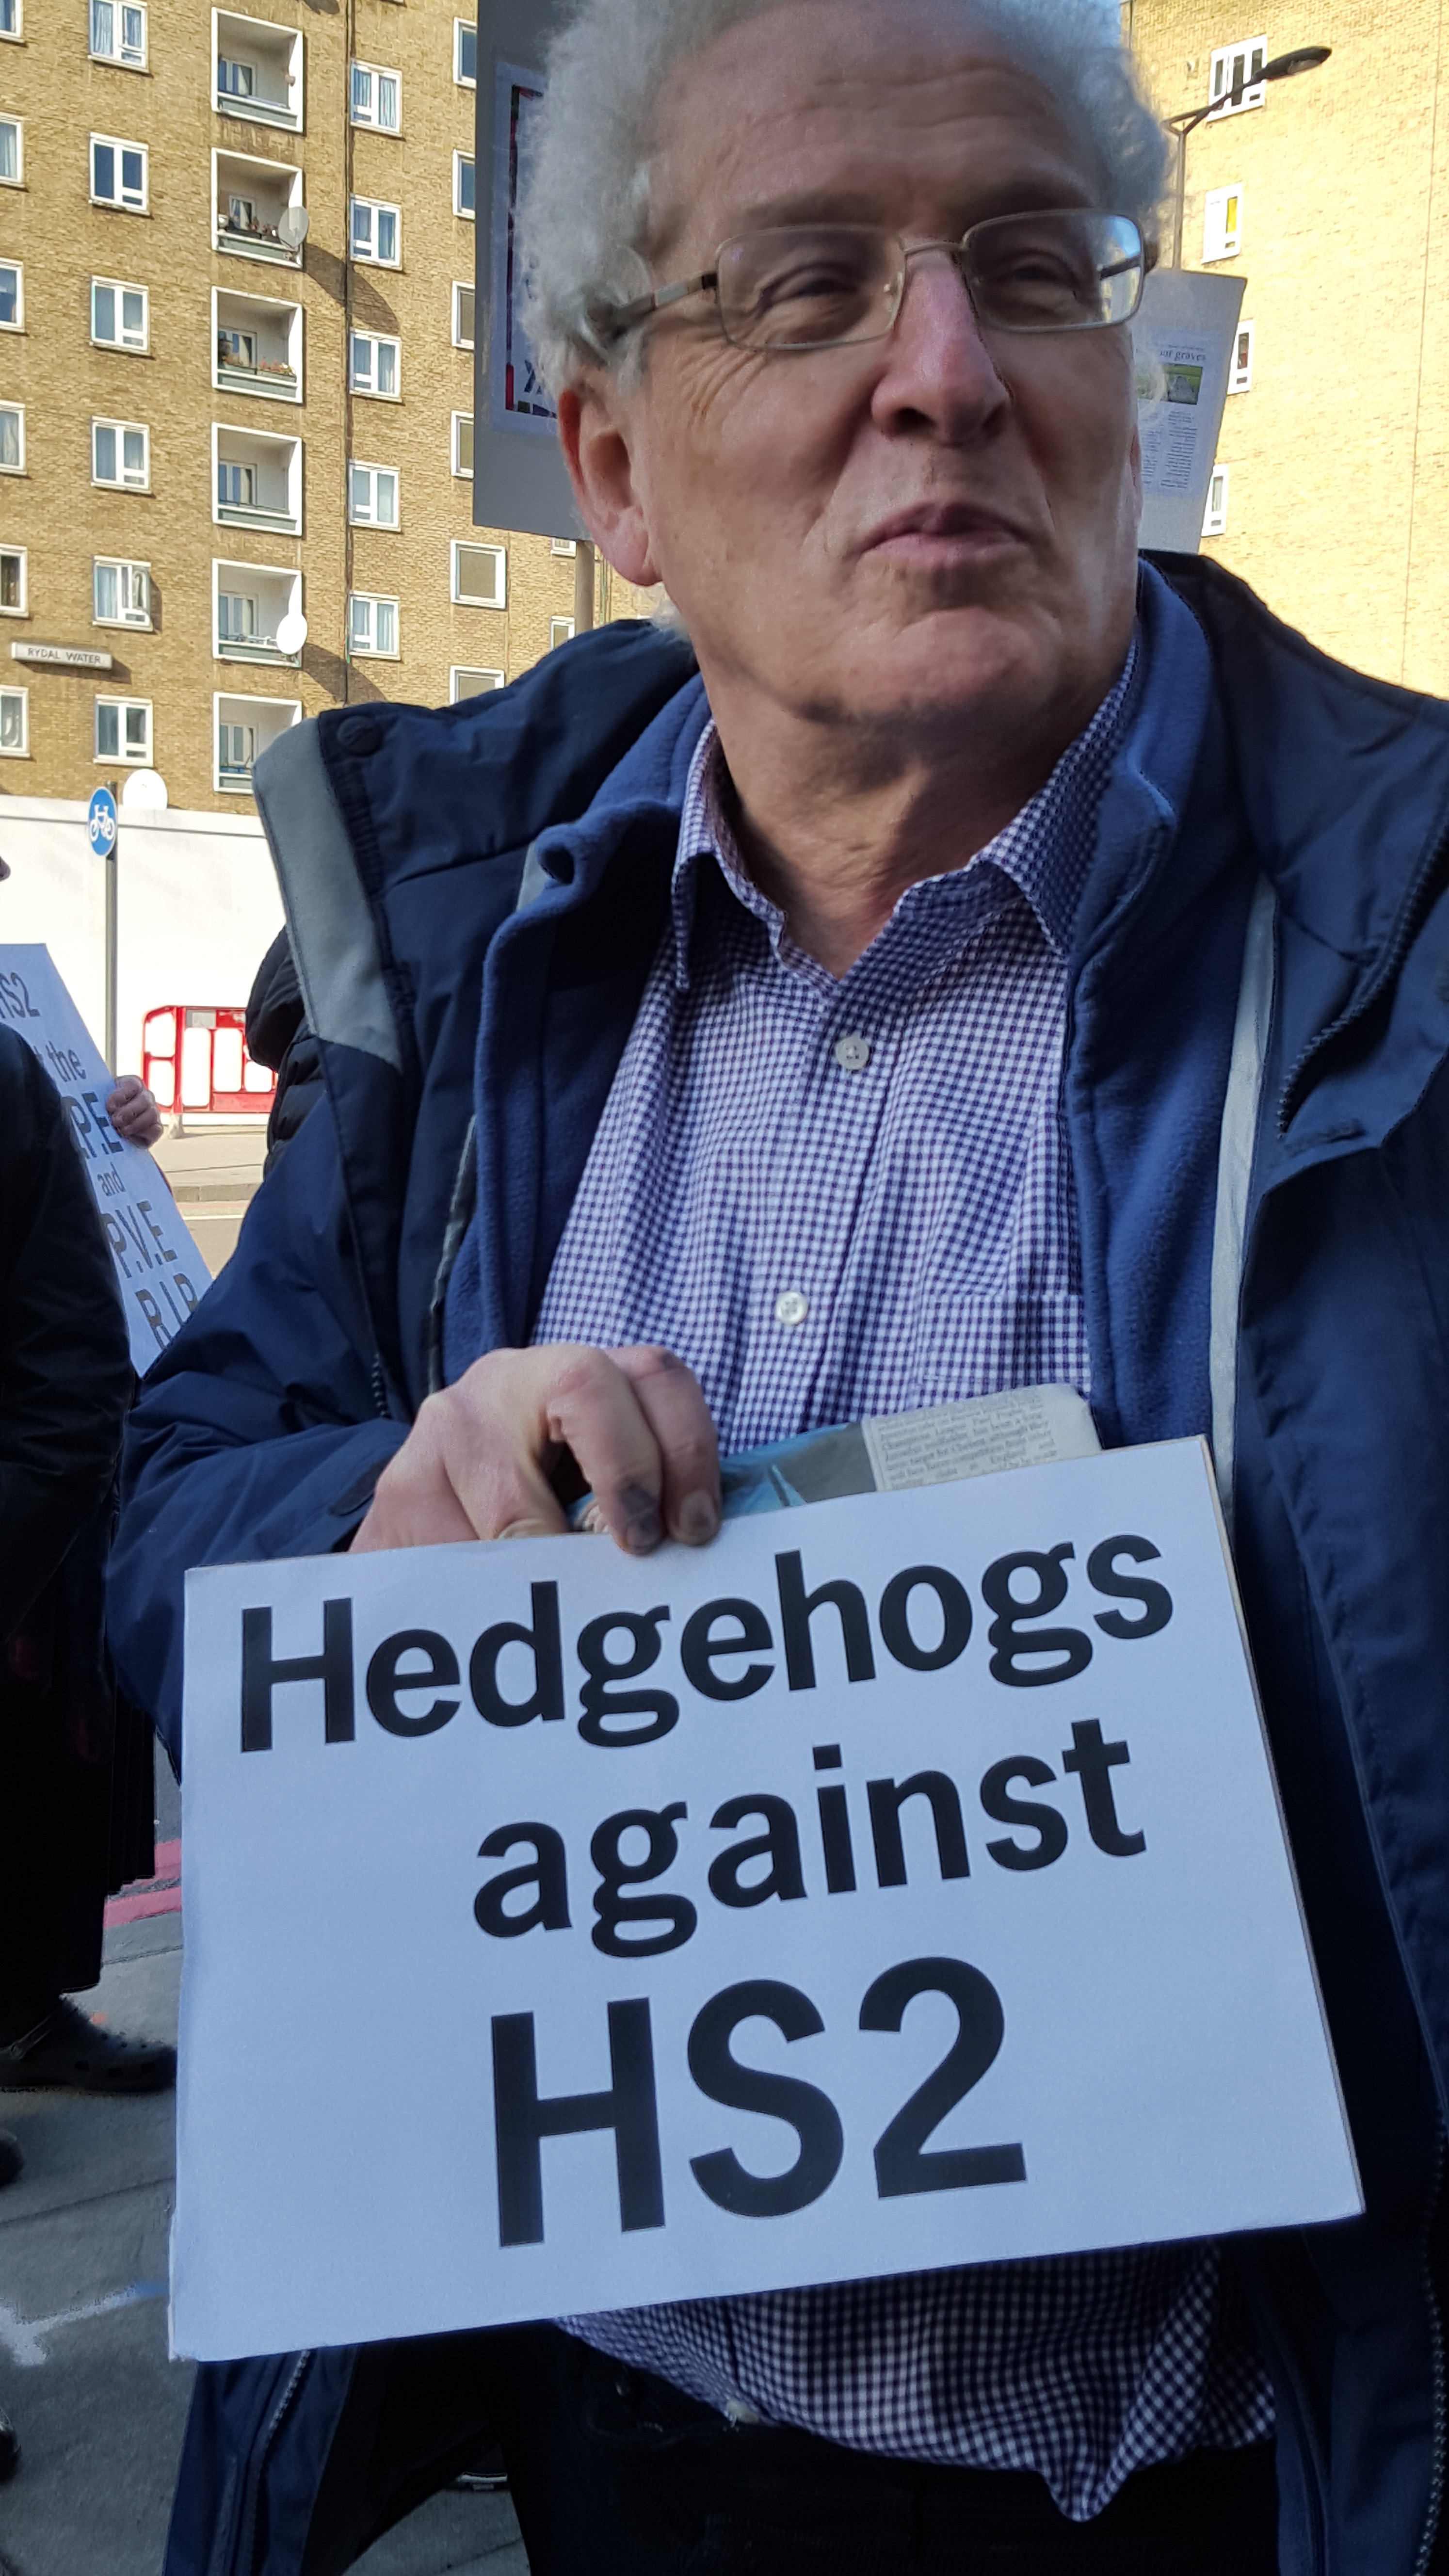 HS2 protestor.